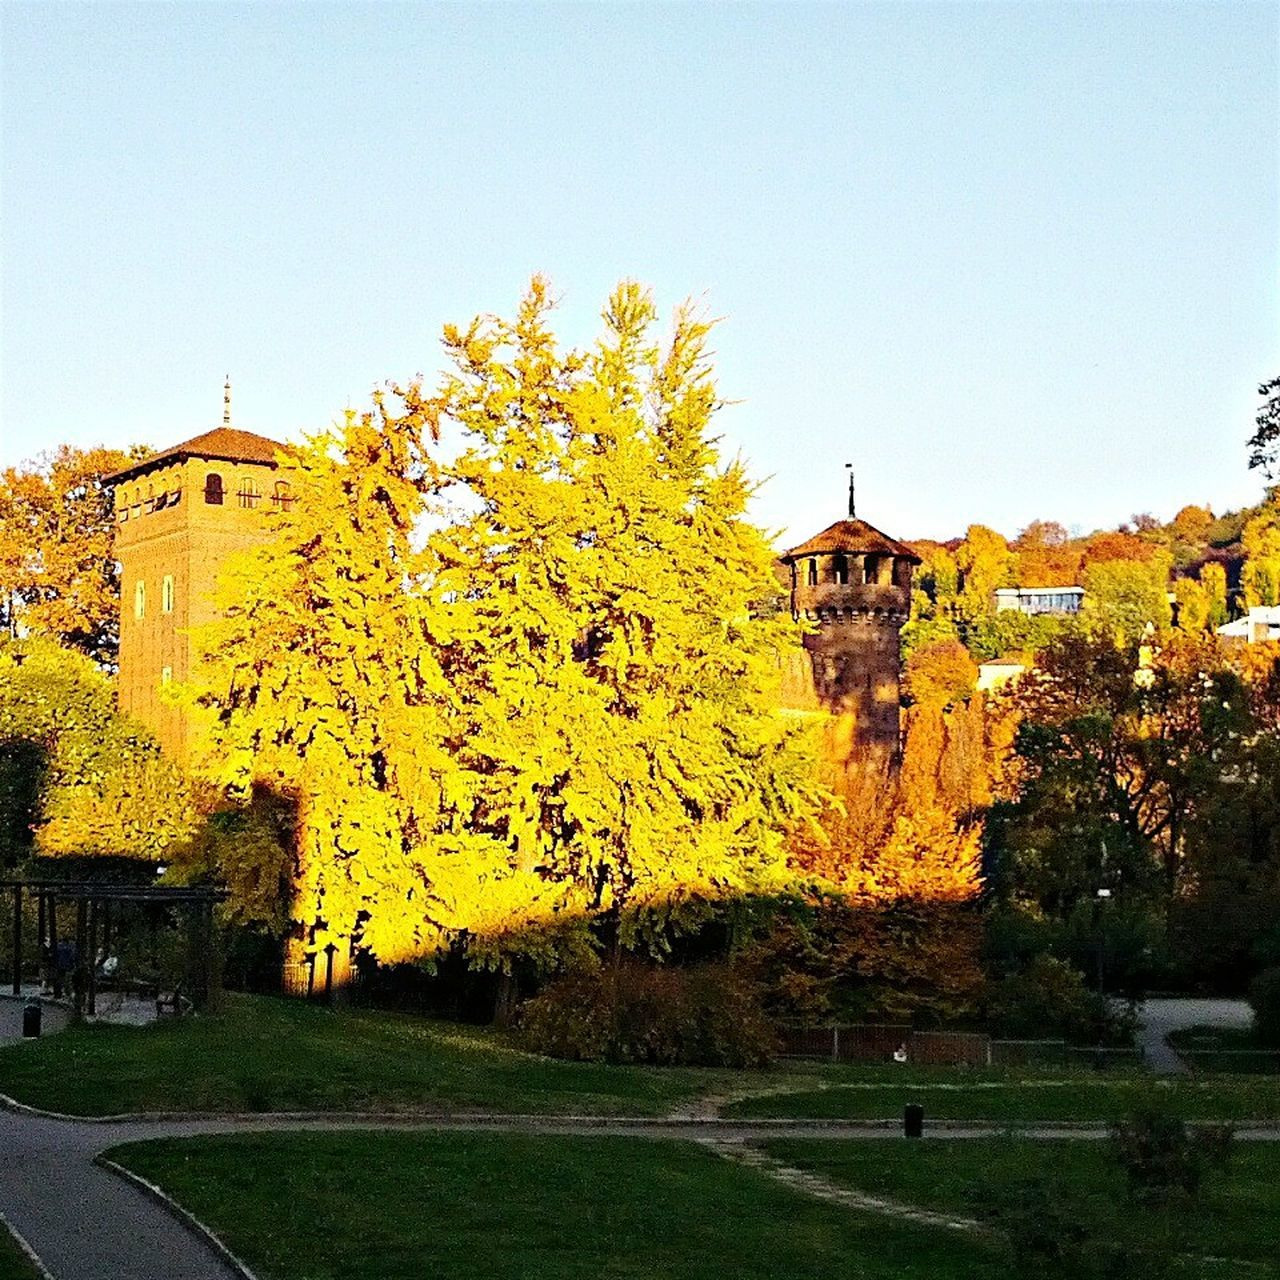 Torino Castellomedievale Colorful Autumn Colors Sunlight Shadows Castle Medieval Architecture Parcodelvalentino